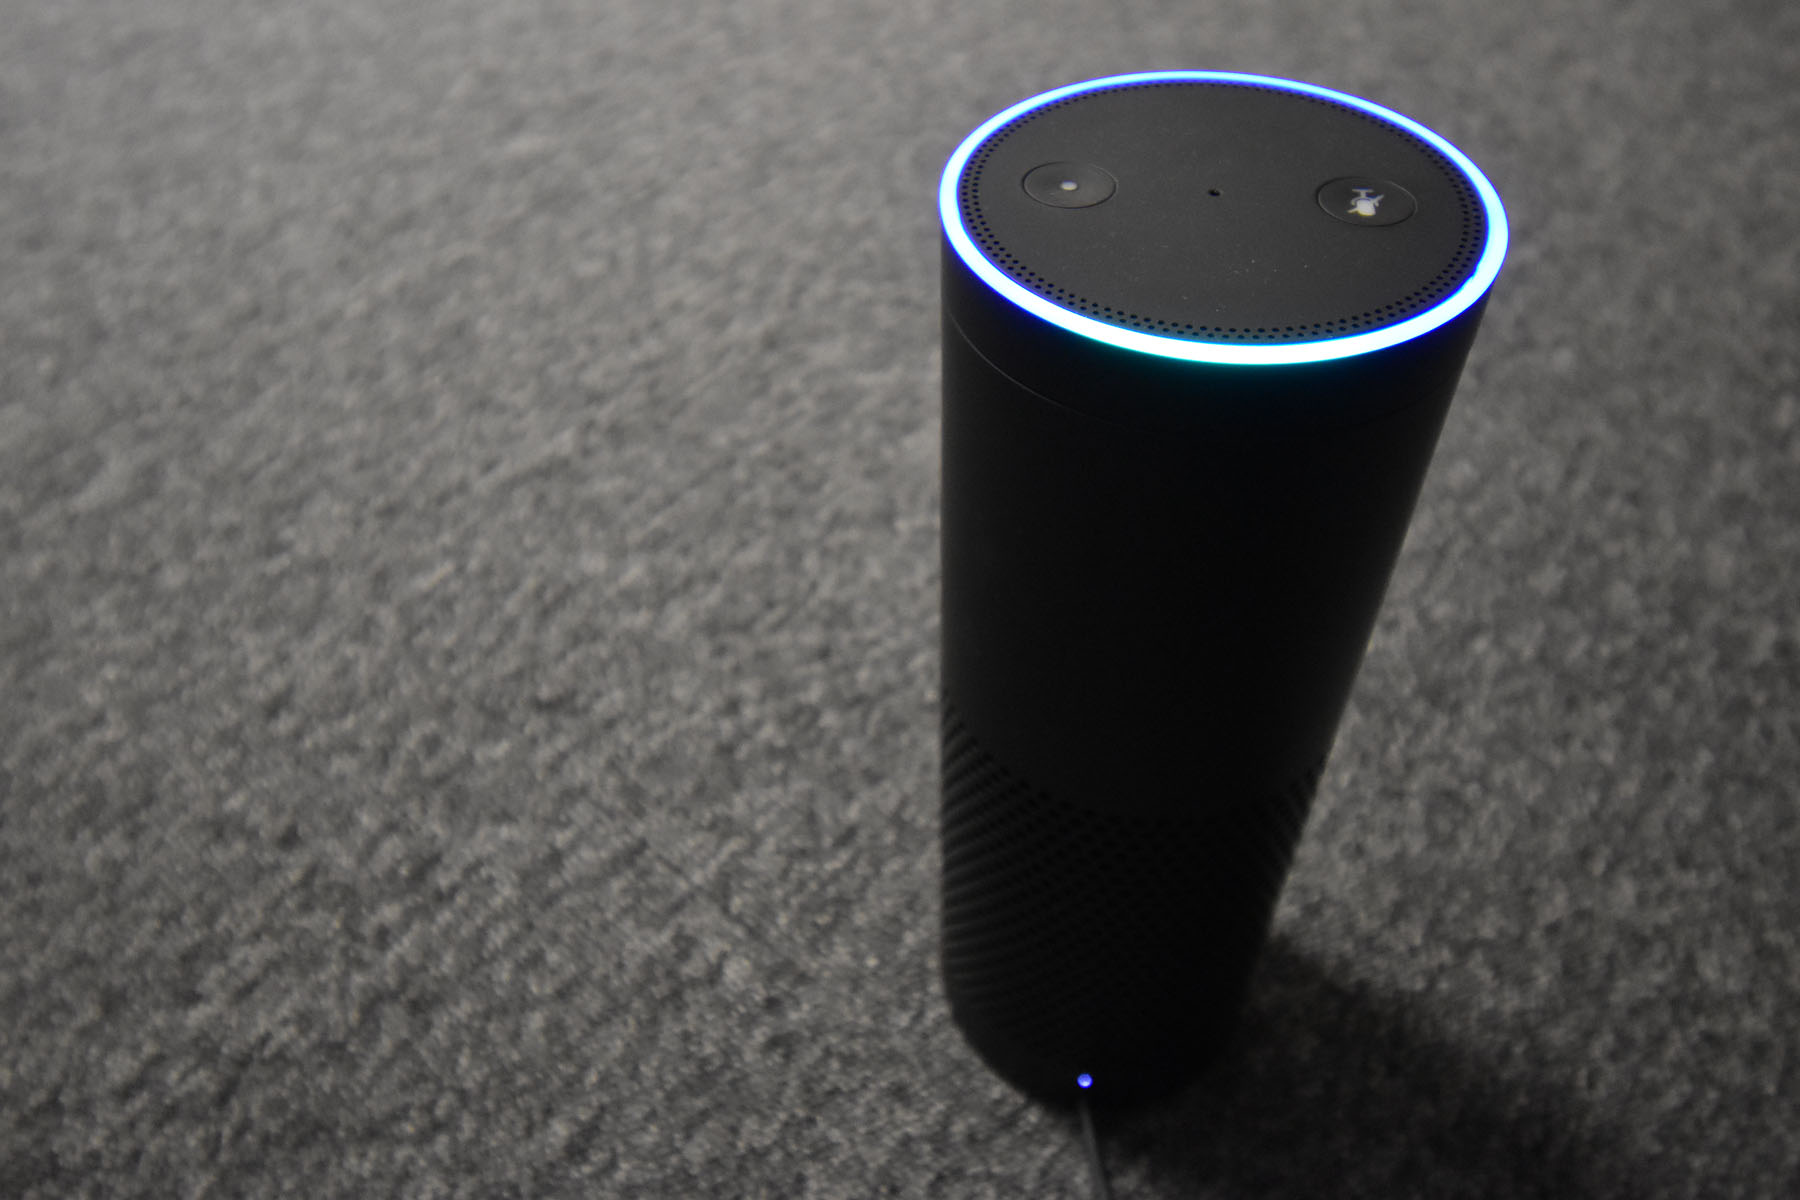 Radio Prague launches on voice-activated smart device Alexa